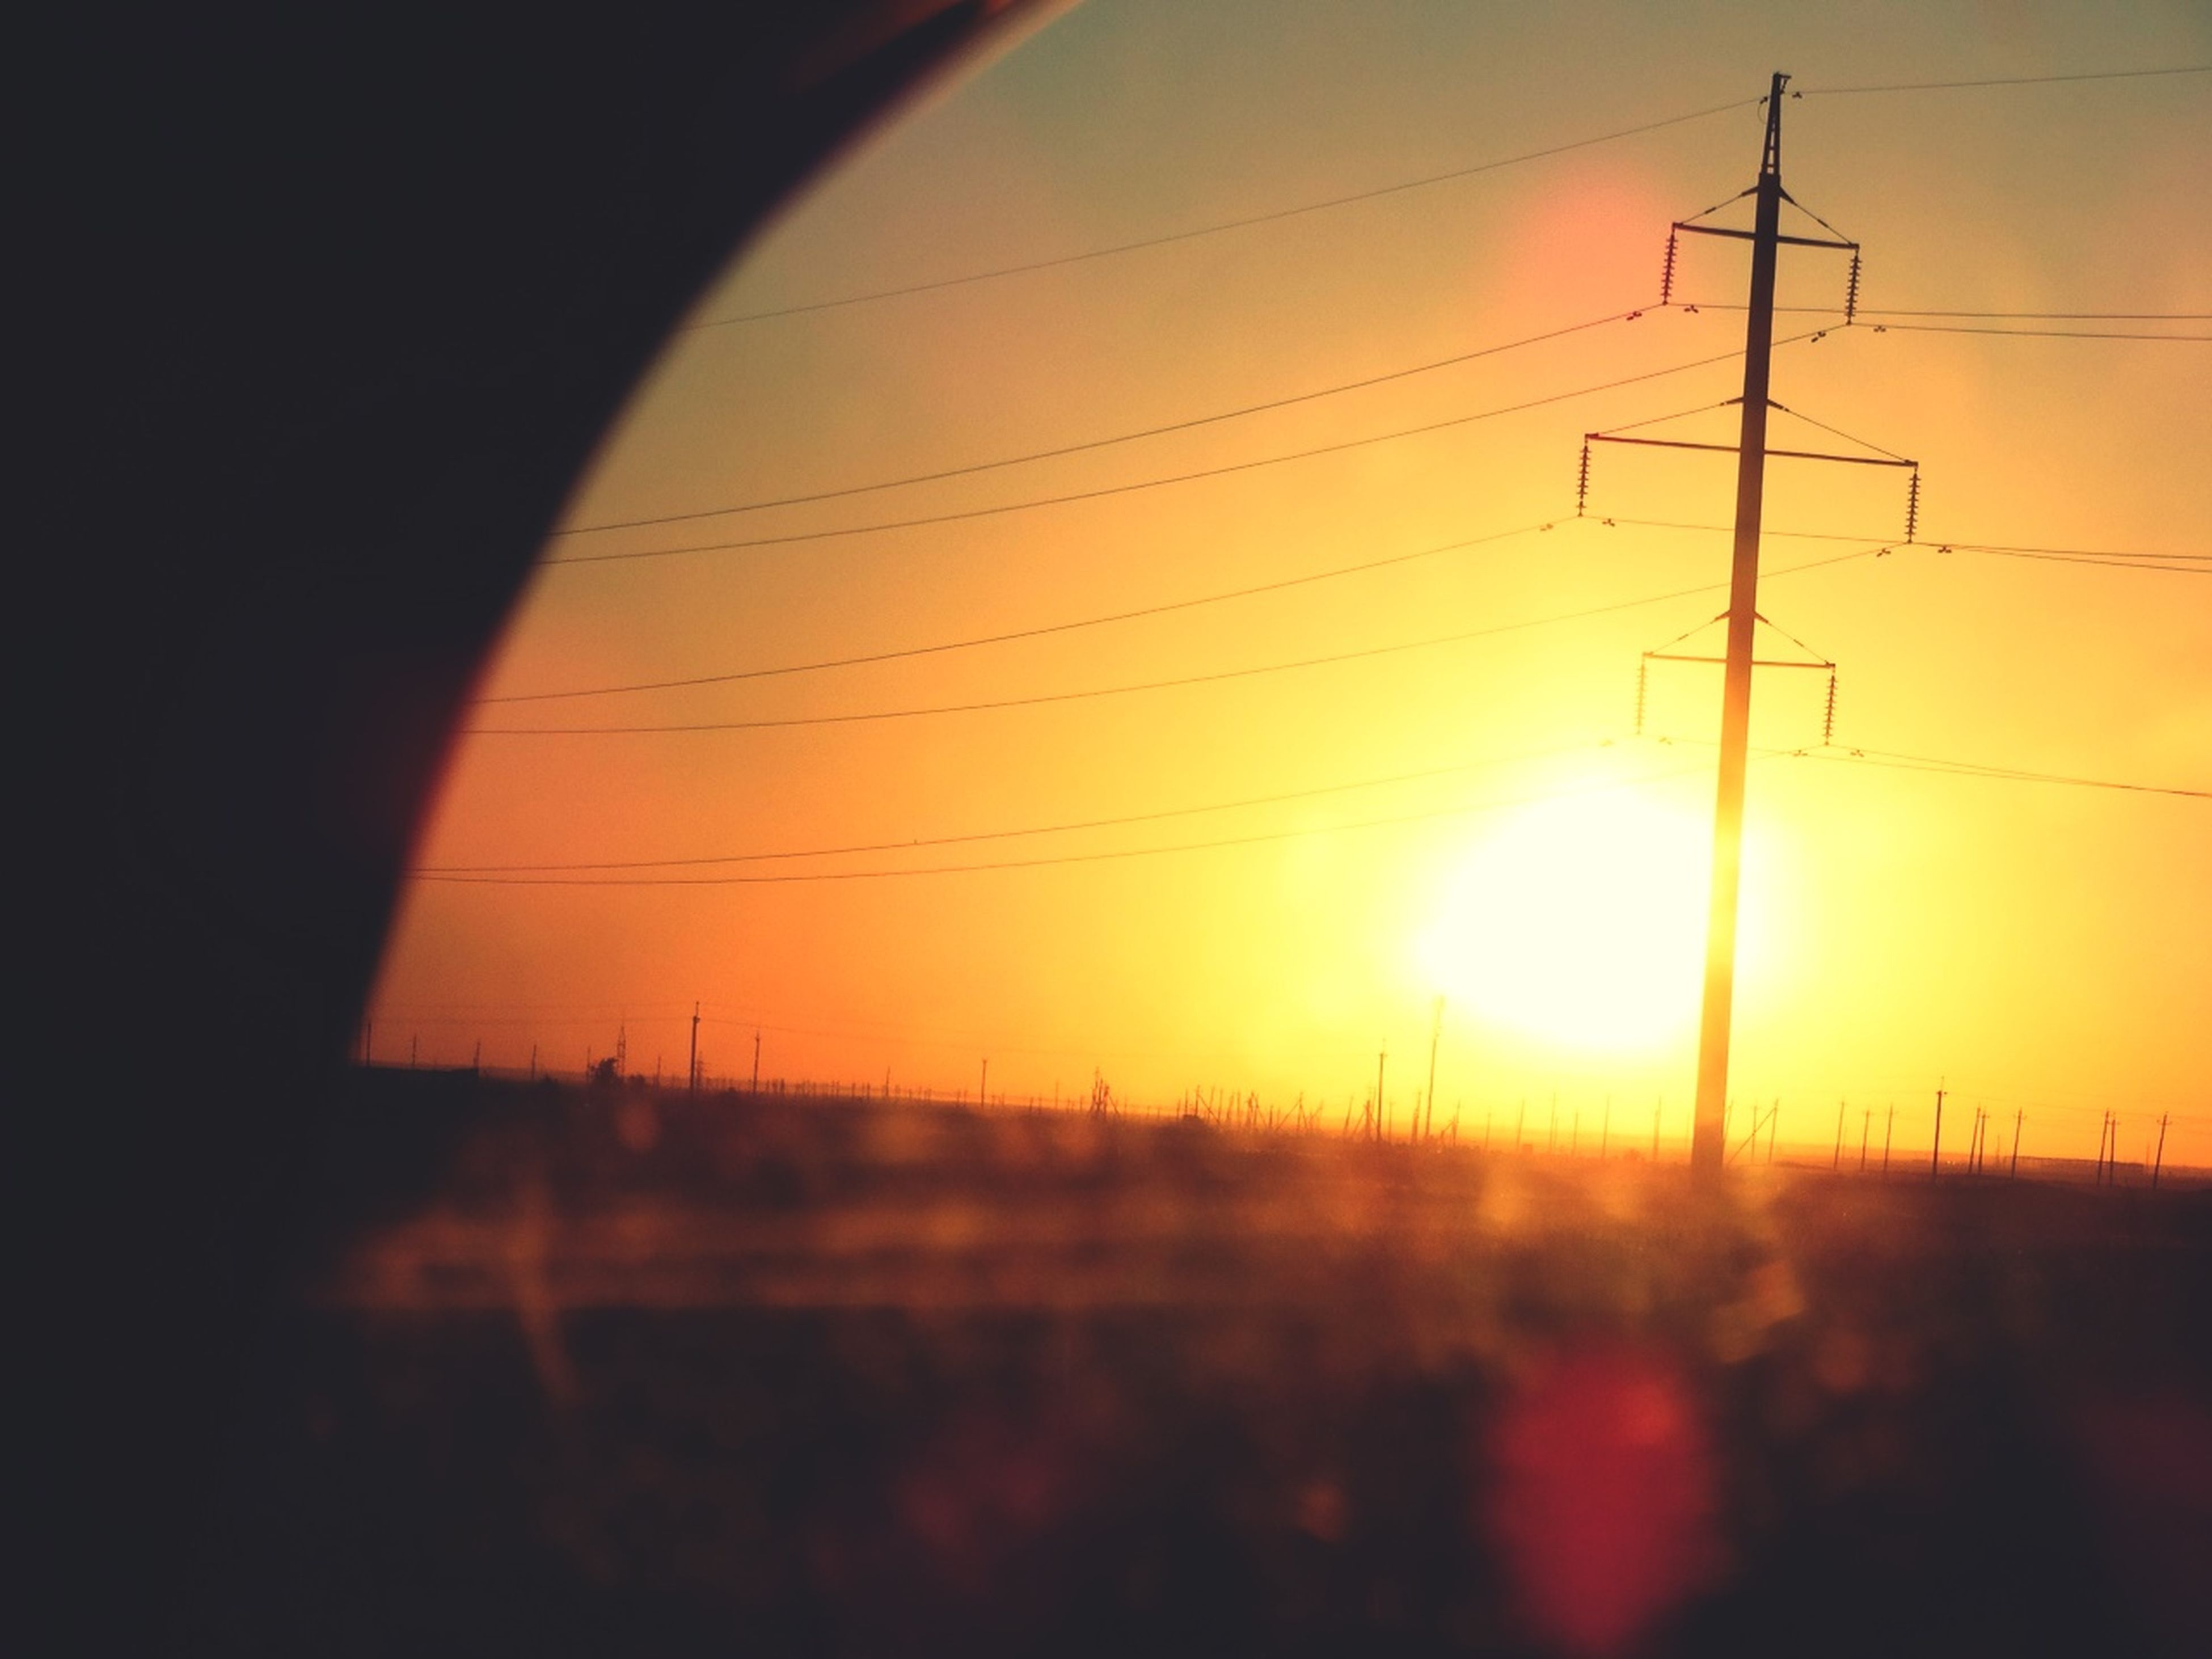 sunset, power line, electricity pylon, power supply, electricity, sun, fuel and power generation, cable, connection, silhouette, technology, sky, orange color, power cable, landscape, sunlight, tranquility, nature, scenics, beauty in nature